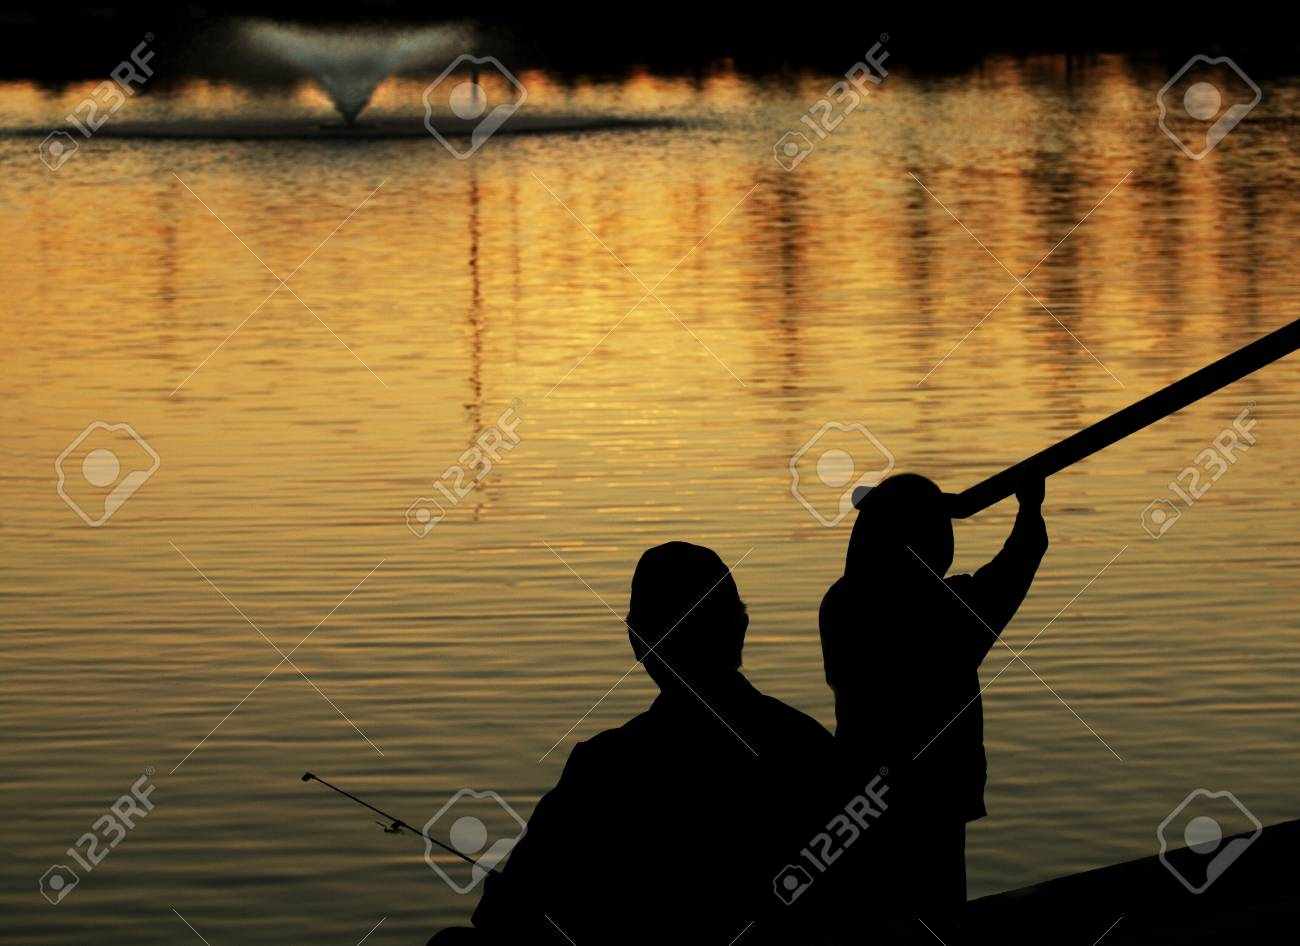 Silhouette of adult and child fishing Stock Photo - 7551692